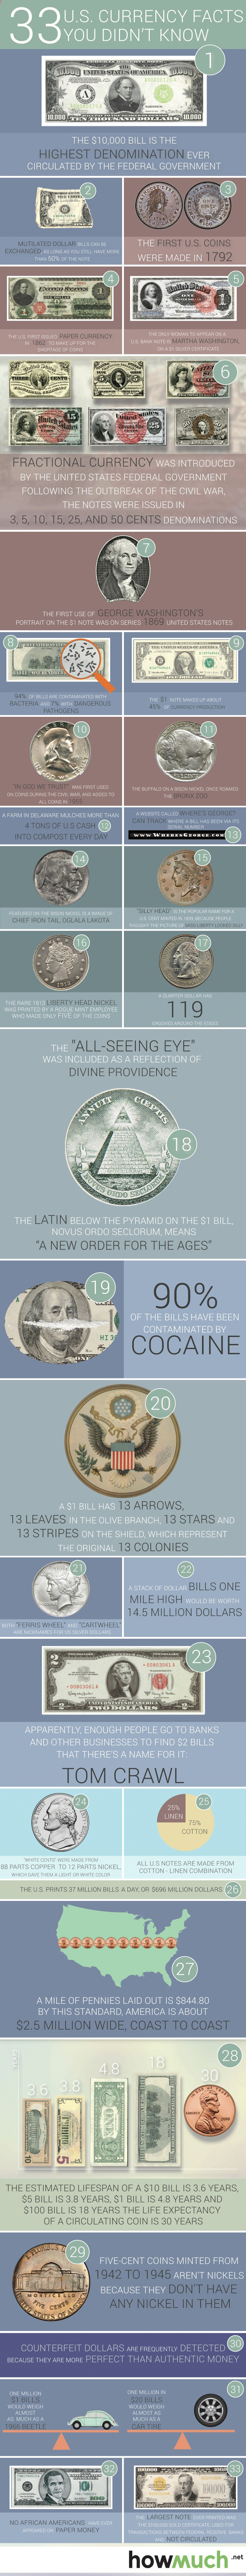 us-currency-full-infographic